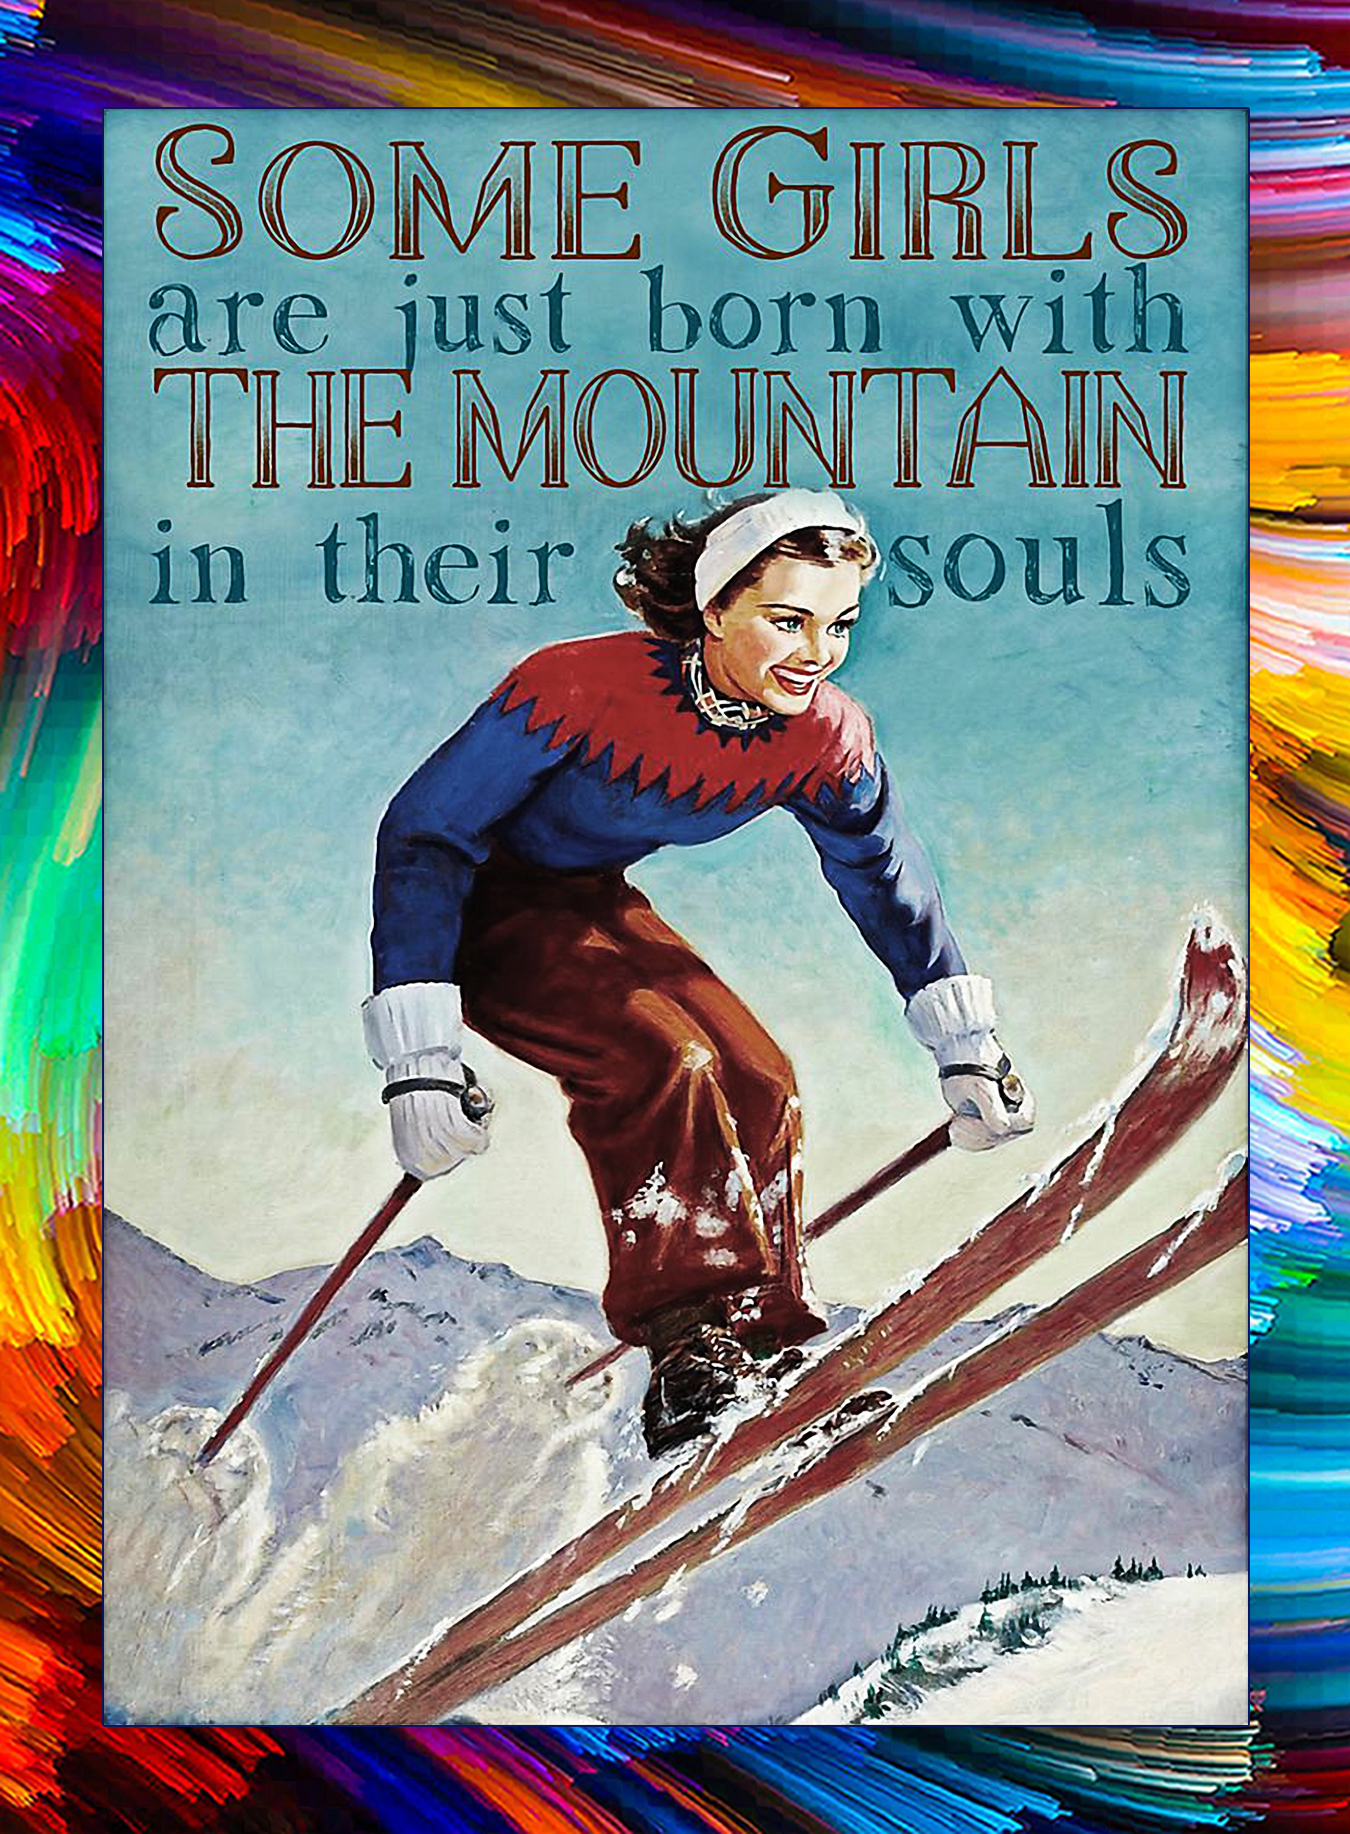 Skiing some girls are just born with the mountain in their souls poster - A3